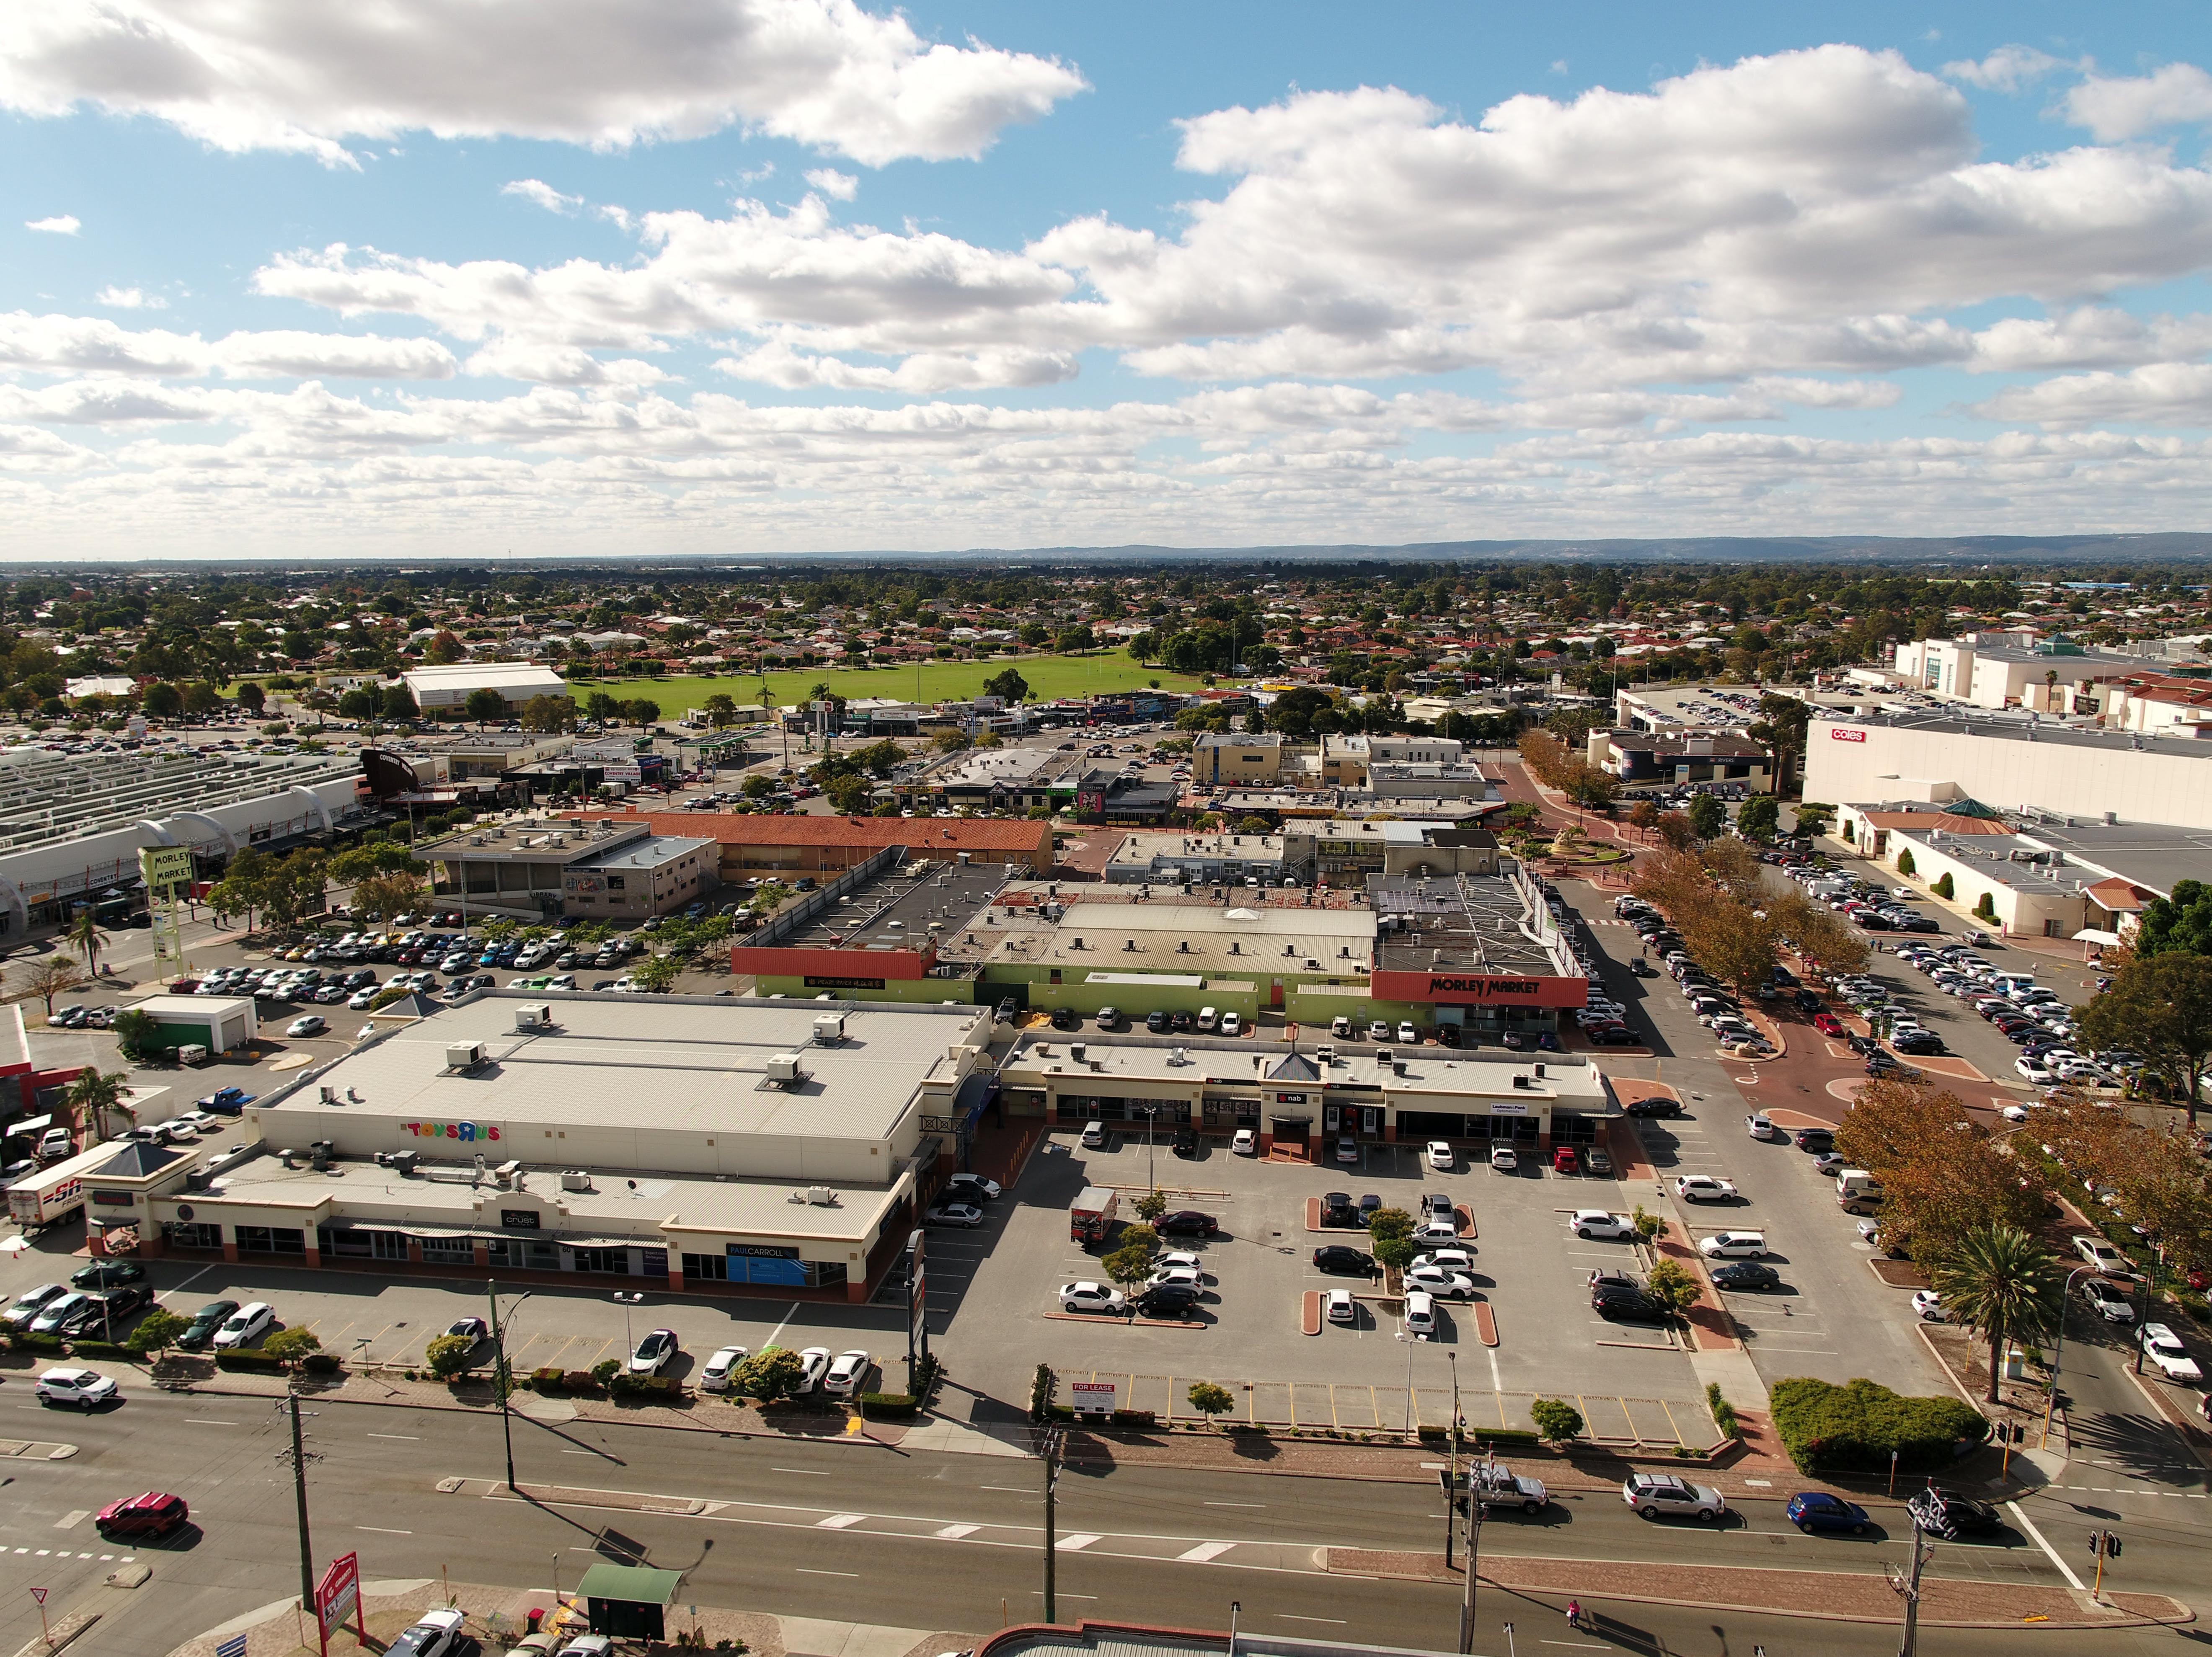 Cnr Bishop And Russell St   Aerial Image